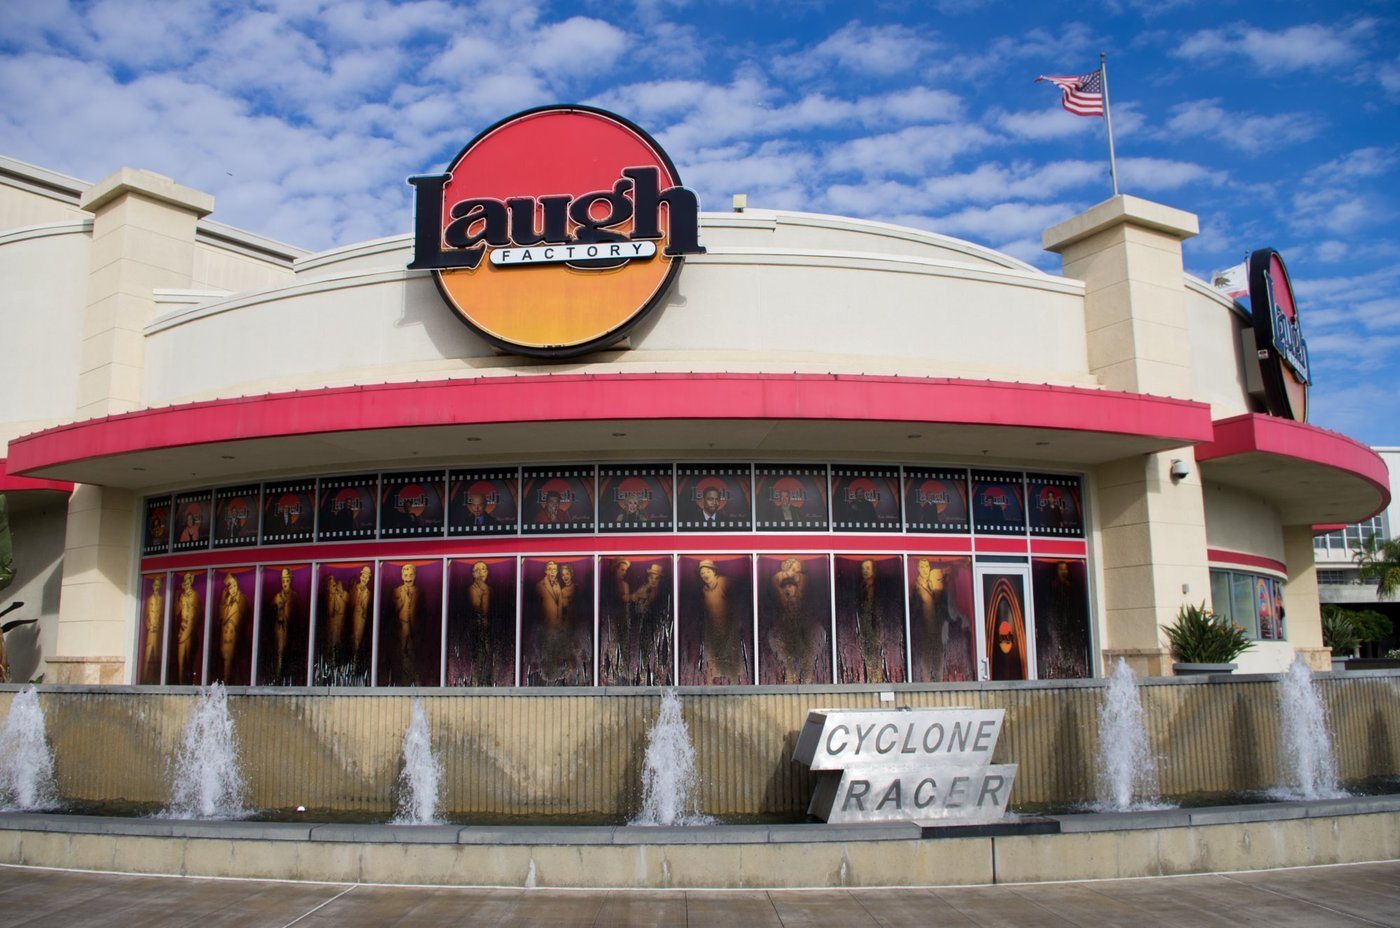 Head on over to Long Beach's The Laugh Factory. Music lovers will appreciate The Laugh Factory's freshly mixed tunes spun by live DJs. Weekends are when crowds really head to The Laugh Factory, so plan accordingly. Parking can be a pain in the neck, but it's as available as ever near the rburbeltoddrick.gaon: S Pine Ave, Long Beach, , CA.